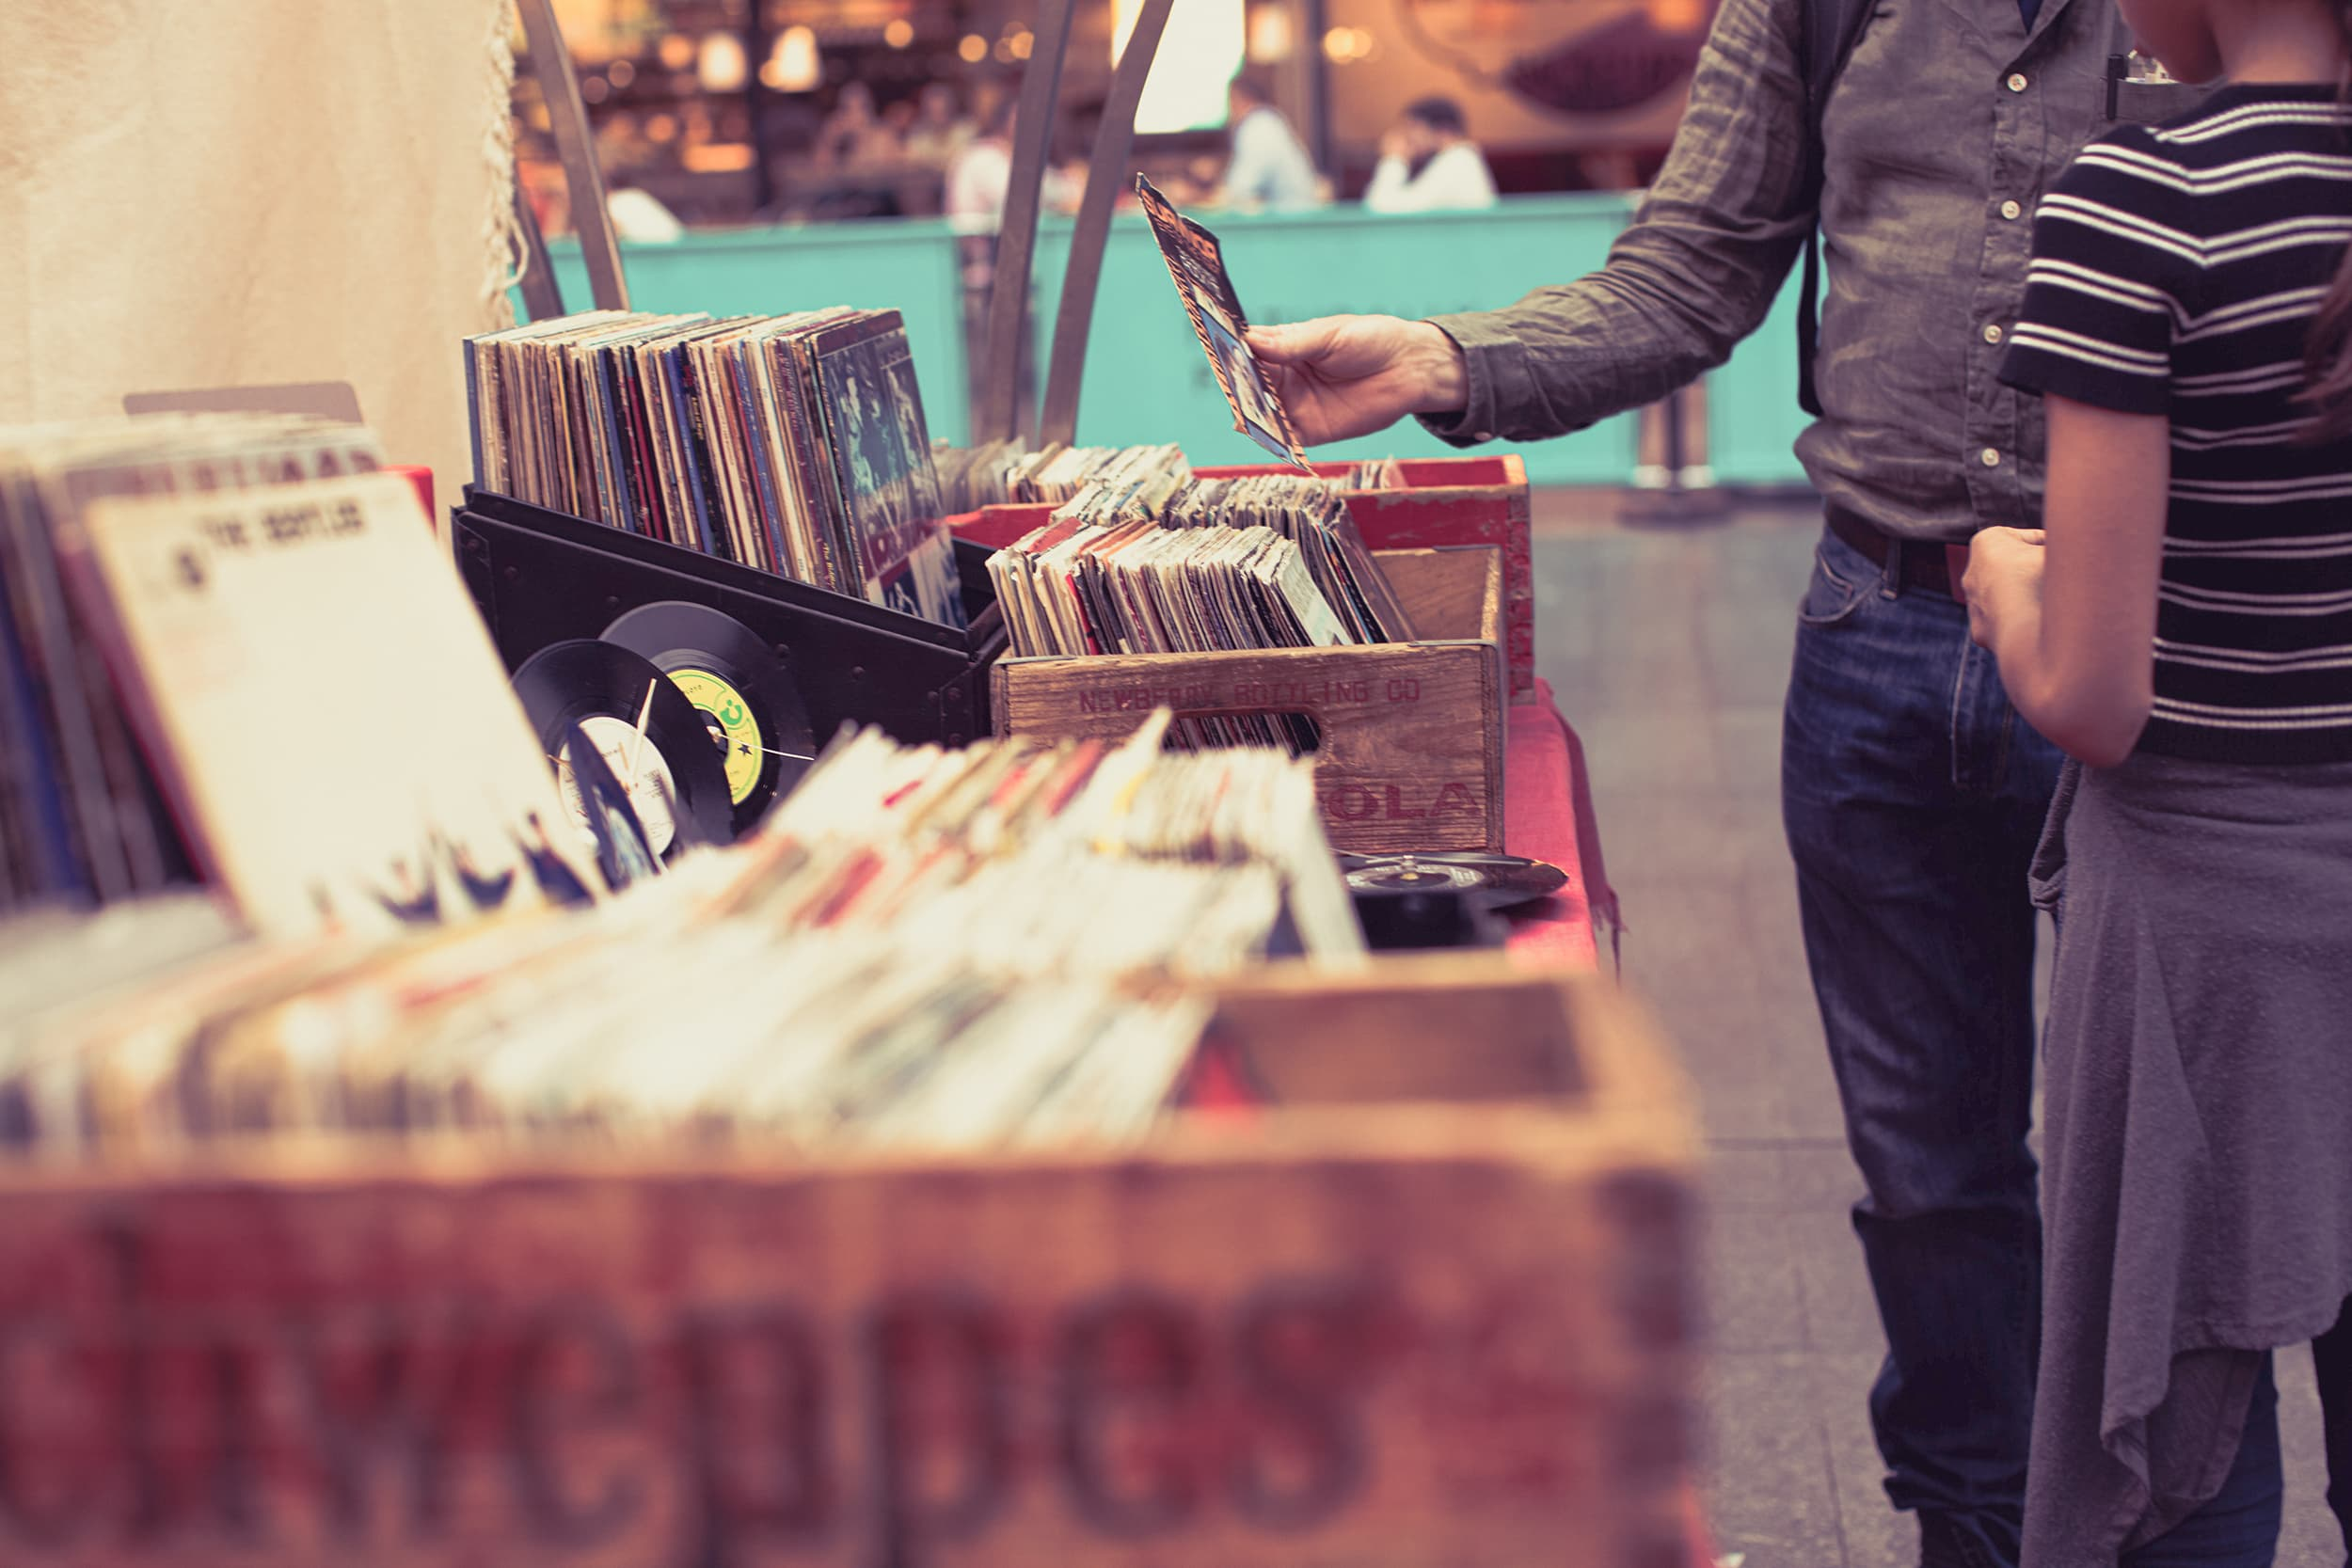 A man picks up a vinyl record from a box on a table.